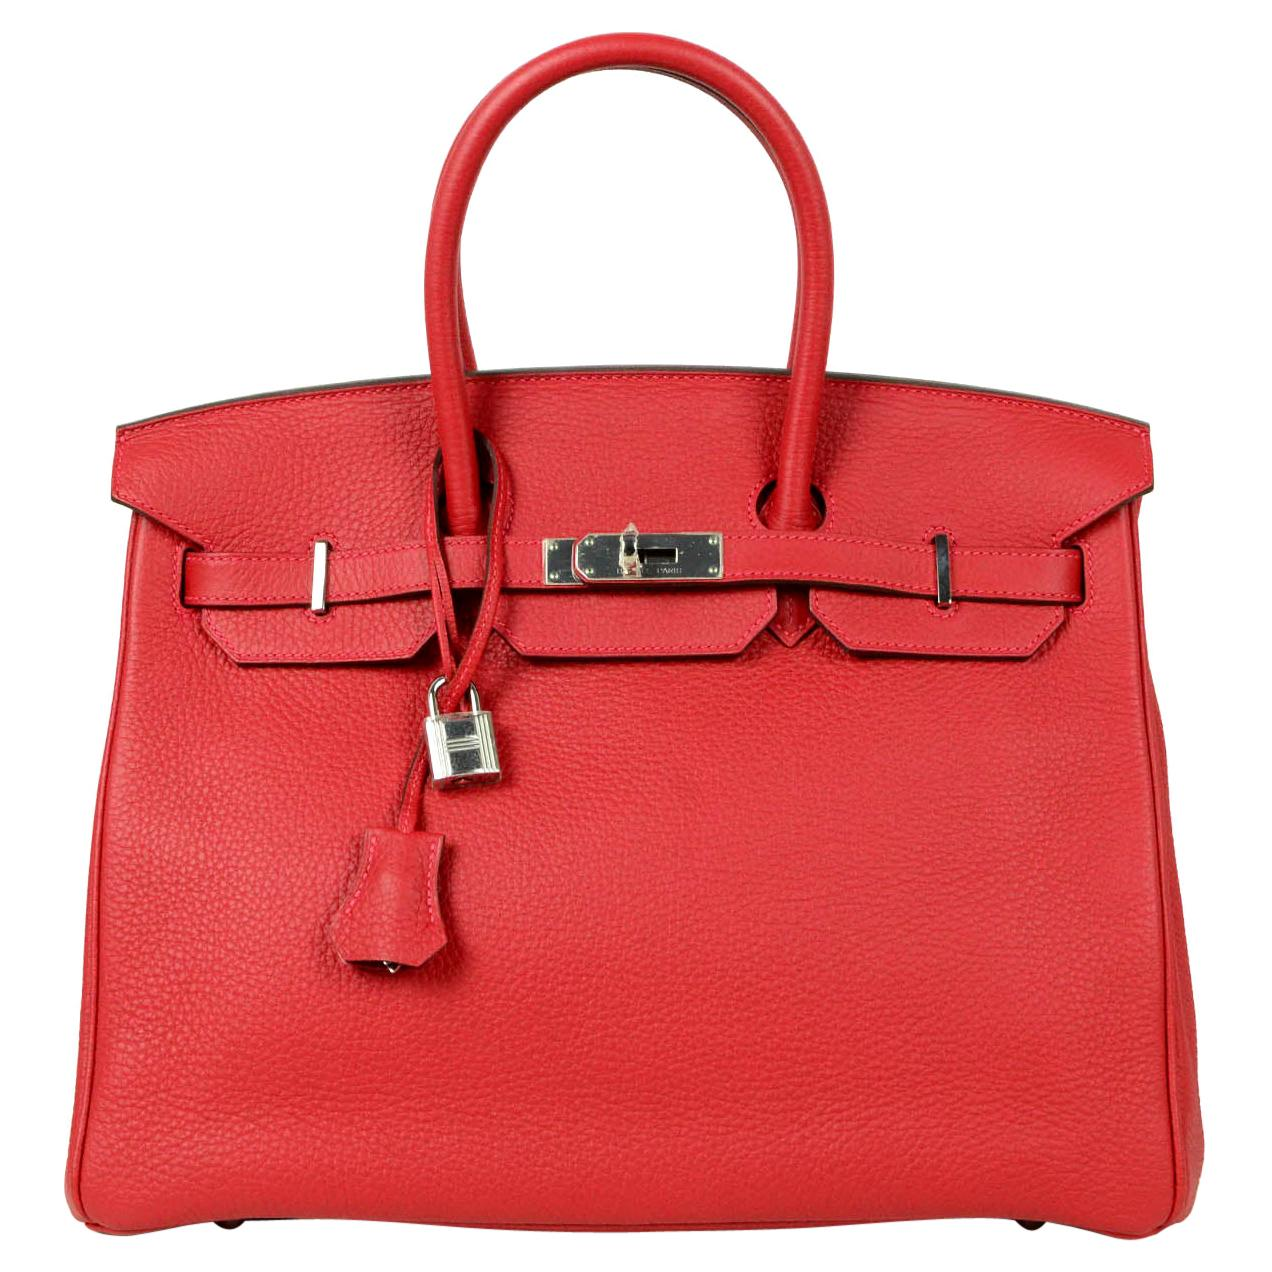 Hermes NEW IN BOX 35cm Red Clemence Leather 35cm Birkin Bag PHW